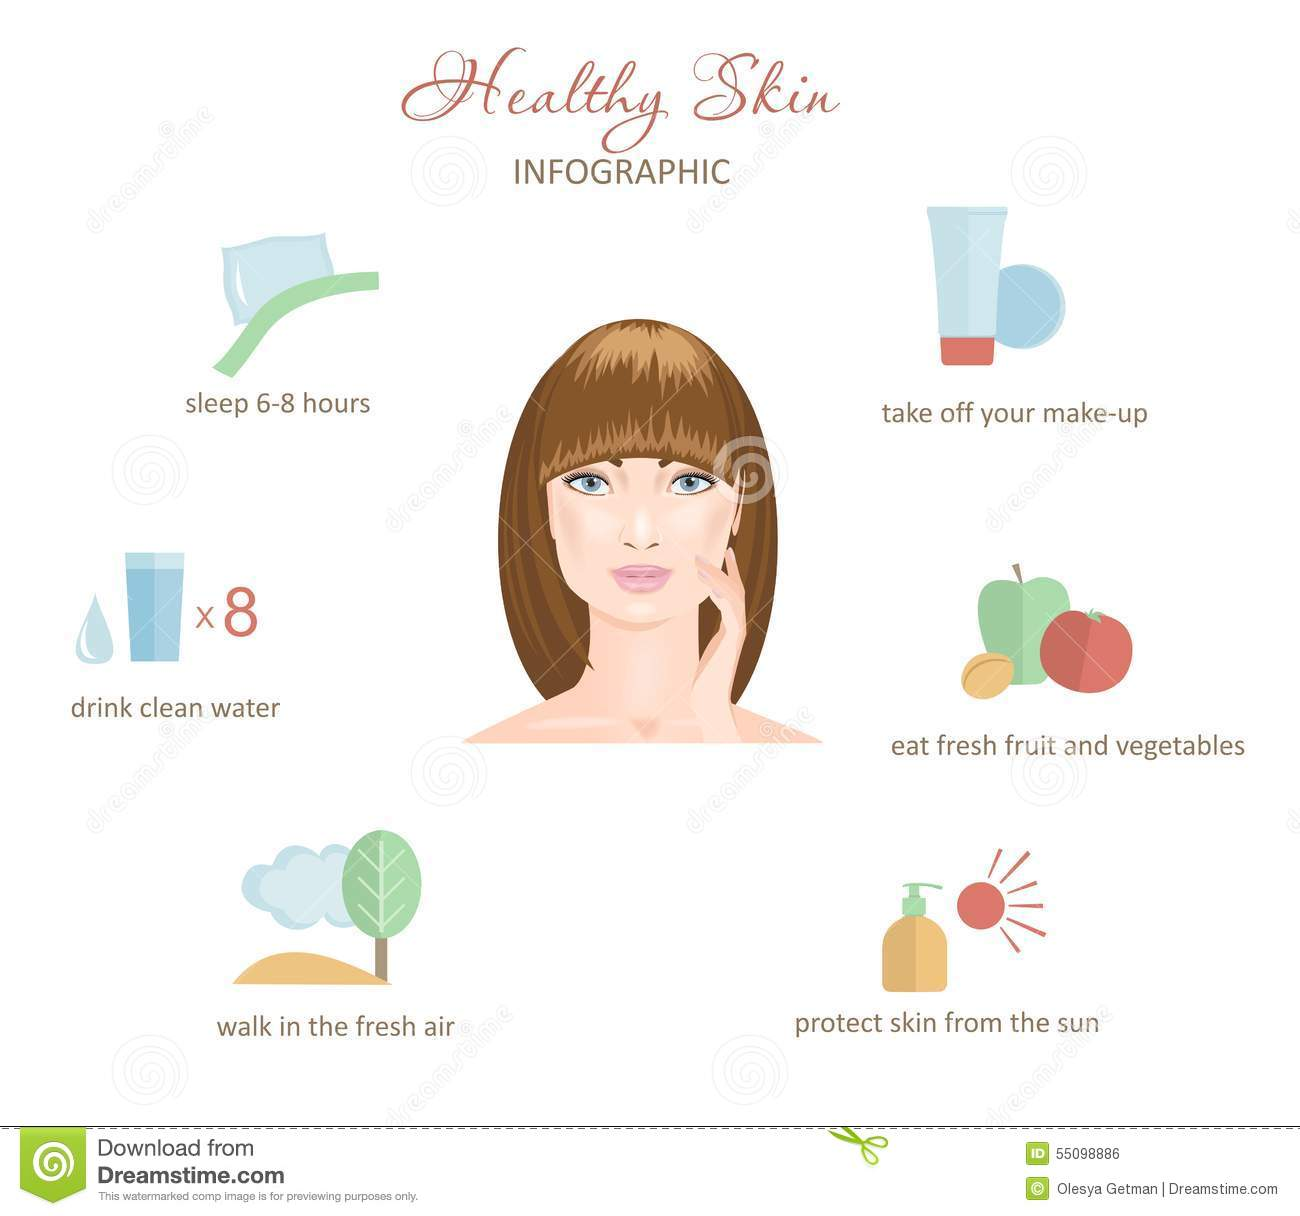 Healthy Skin Care: Healthy Skin Infographic Stock Vector. Illustration Of